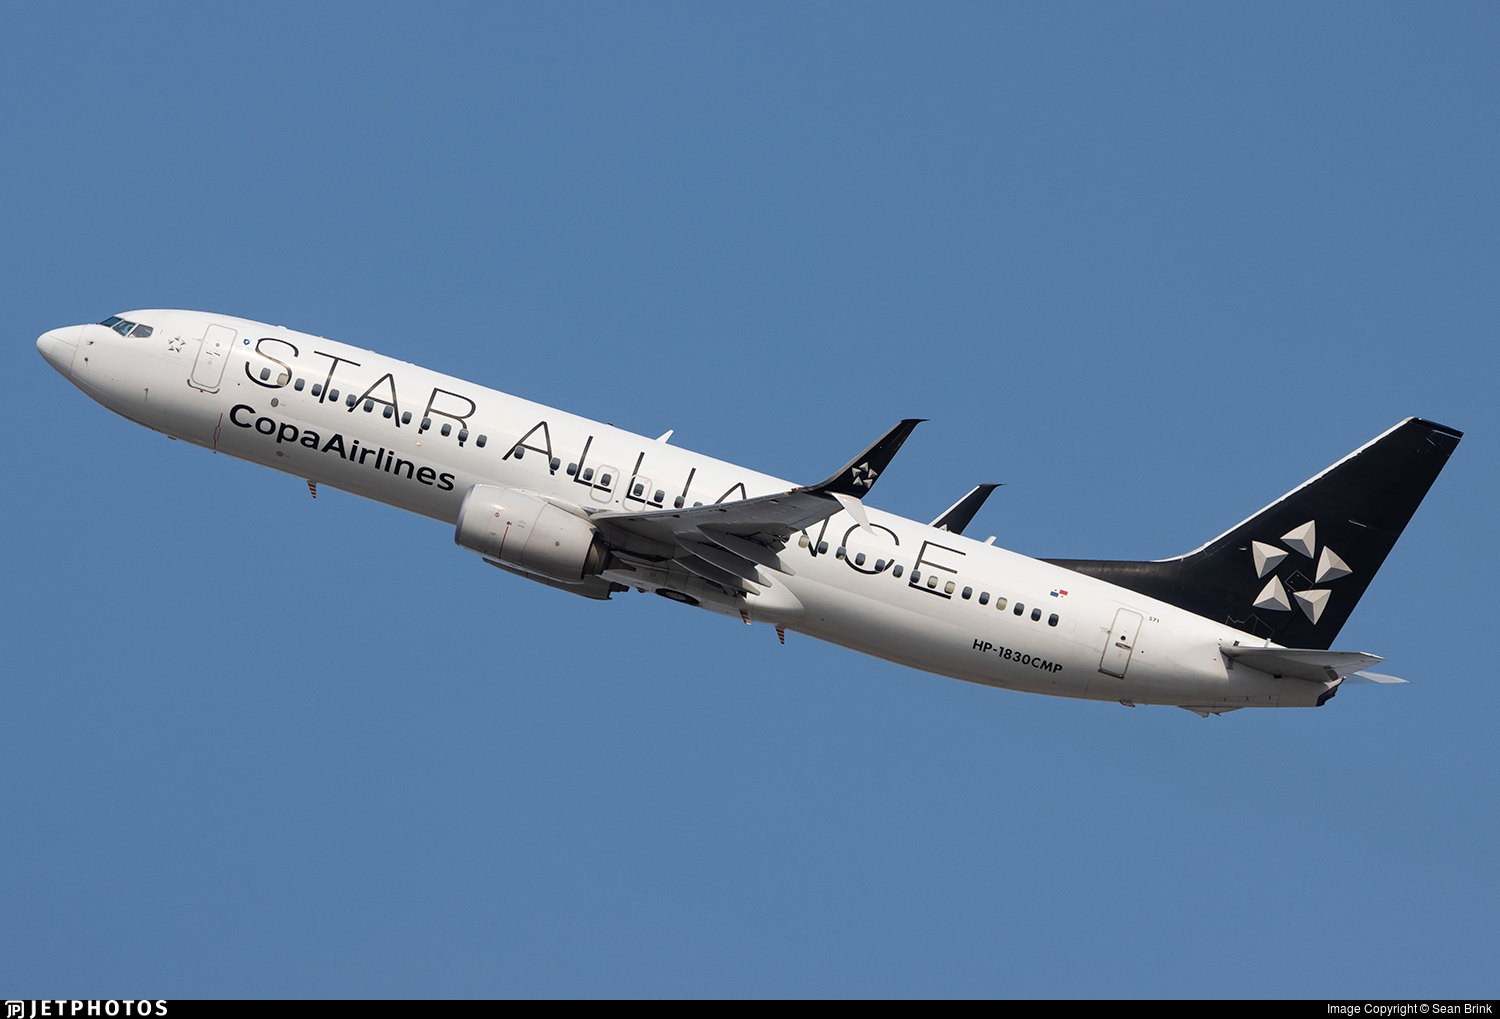 HP-1830CMP - Boeing 737-8V3 - Copa Airlines